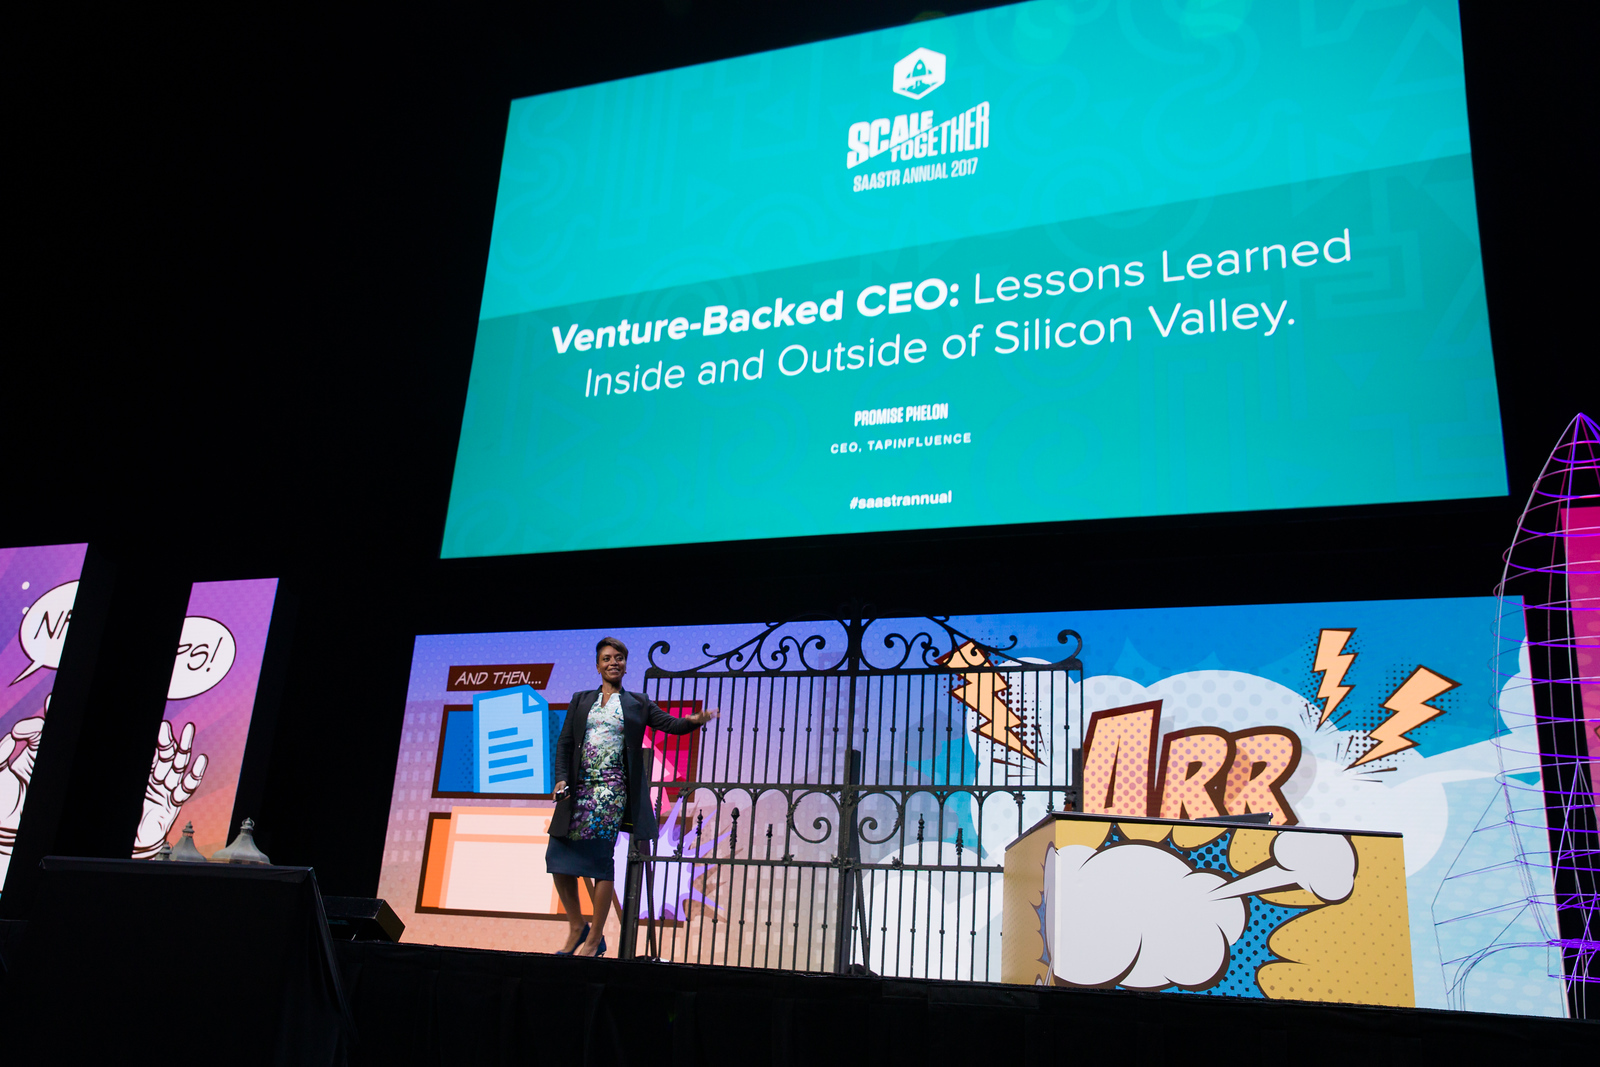 Venture-Backed CEO: Lessons Learned Inside and Outside of Silicon Valley Promise Phelon CEO / TAP INFLUENCE